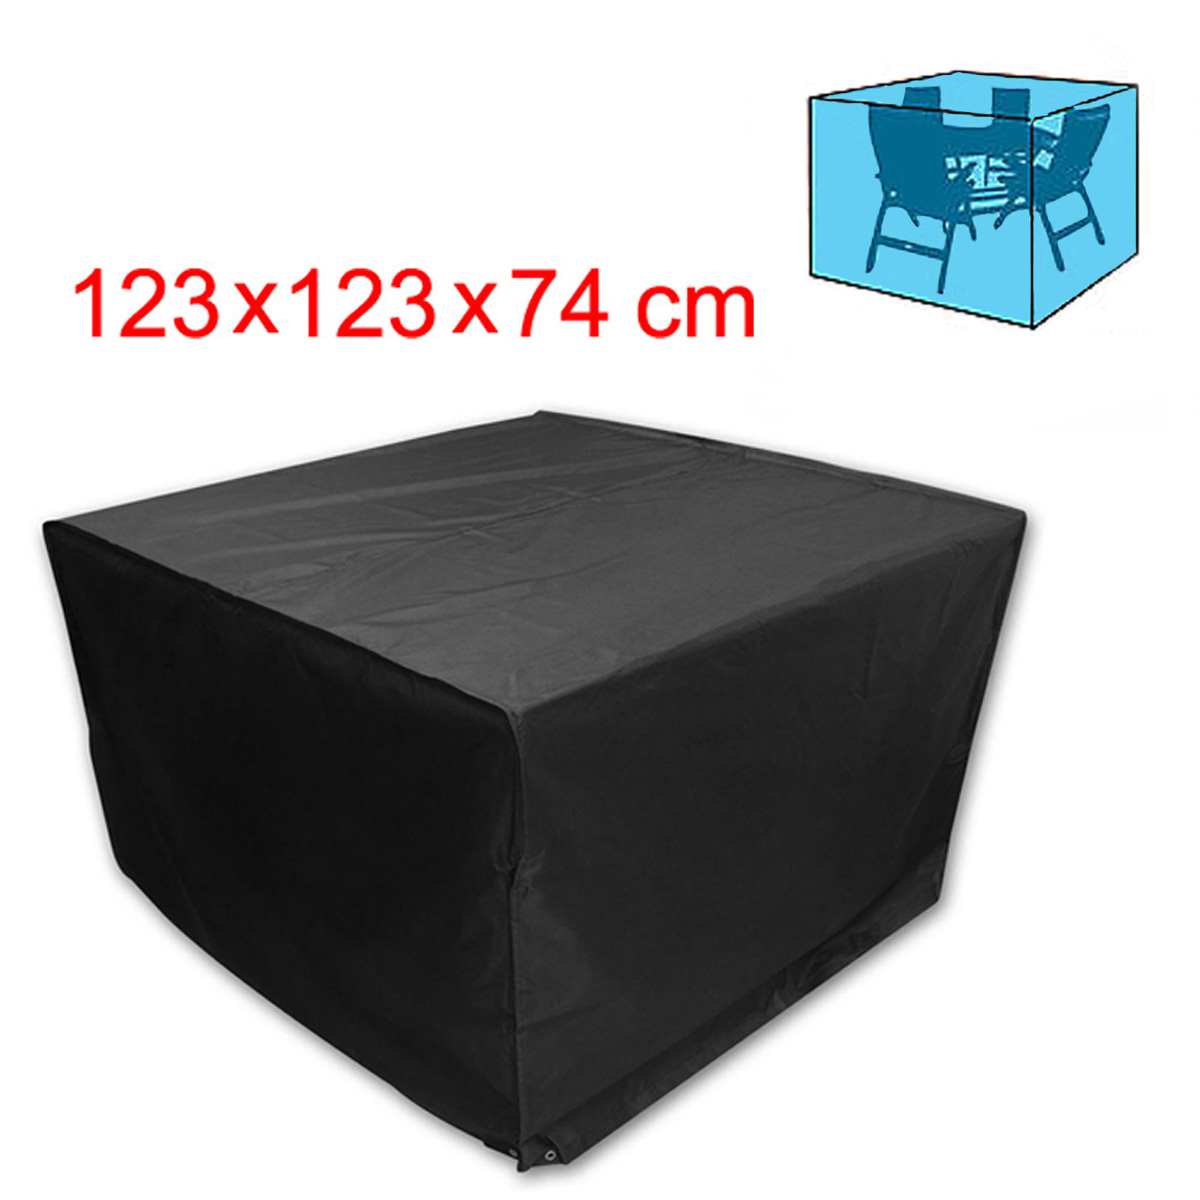 4 seater cube patio set rattan wicker garden chair table for Rattan garden furniture seat covers